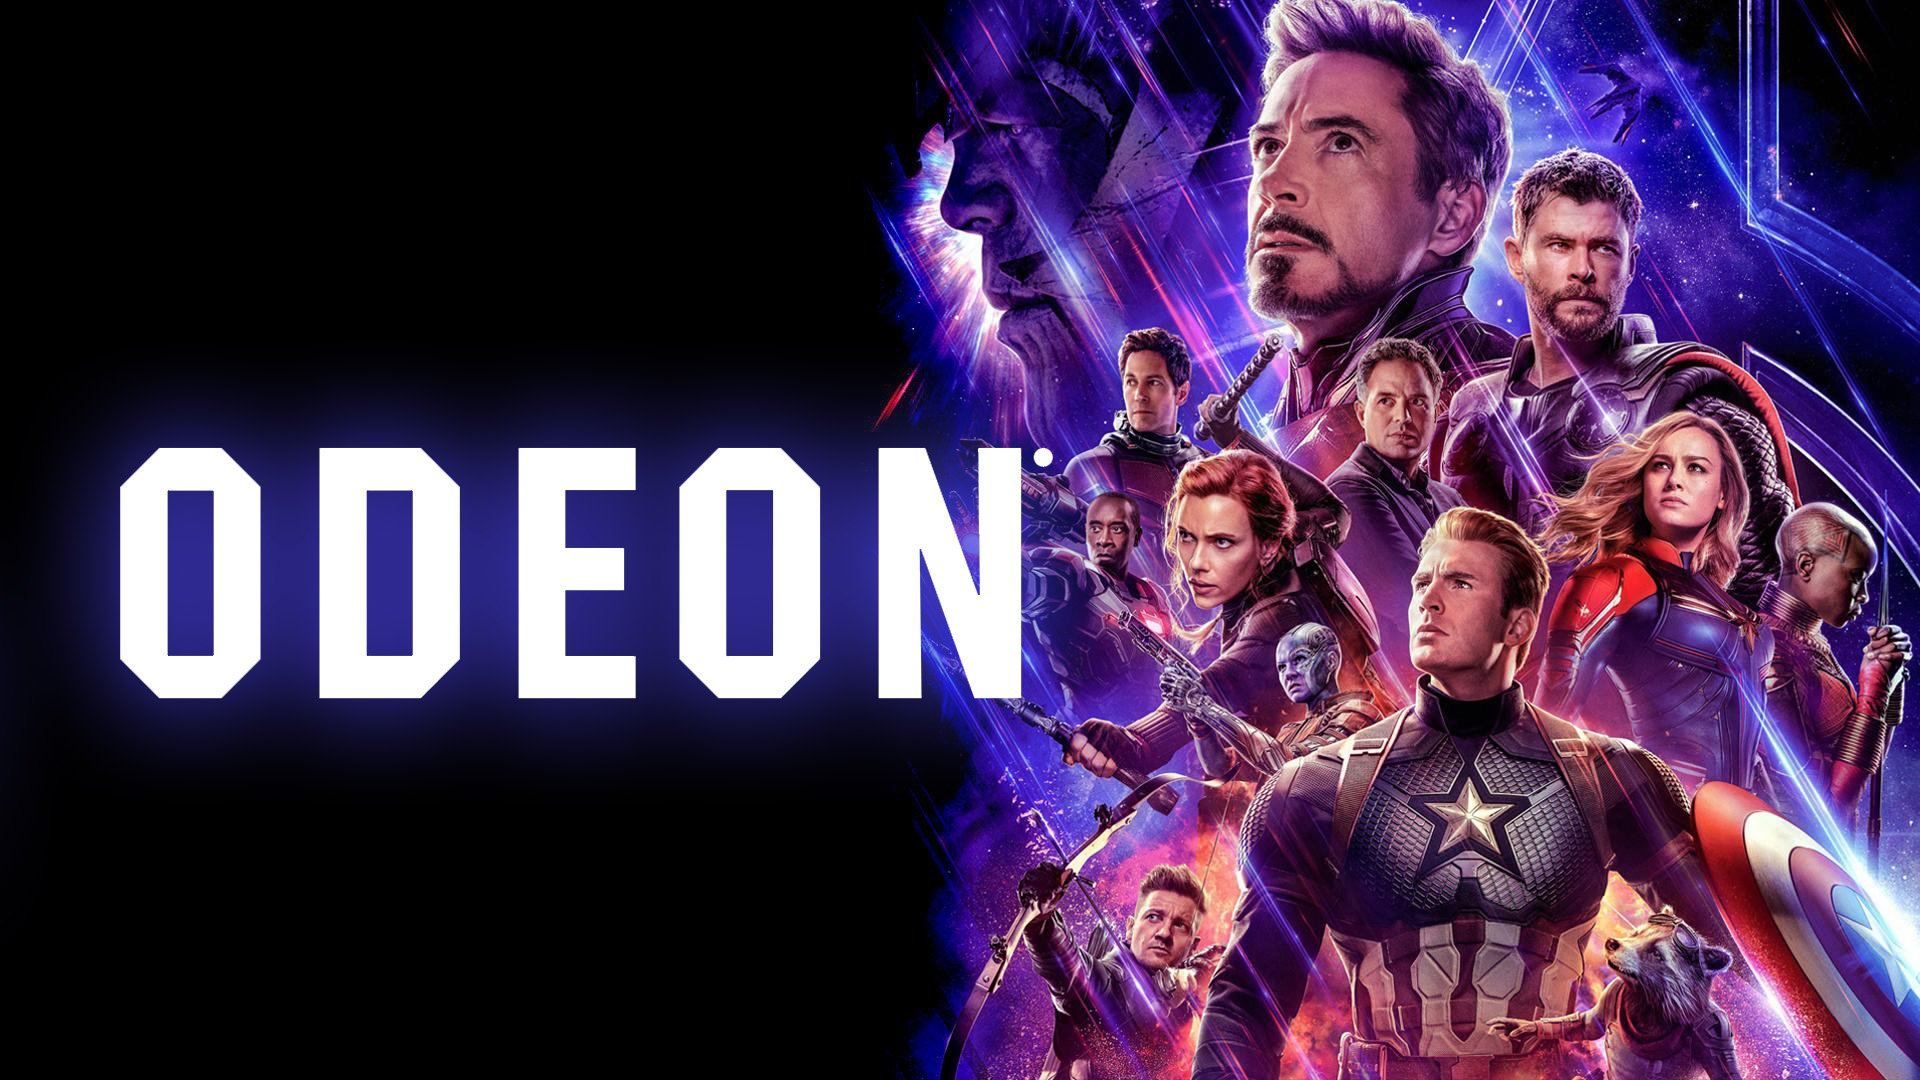 Odeon cinema logo and Avengers Endgame movie poster featuring Iron Man, Thor, Captain America and other Avengers characters